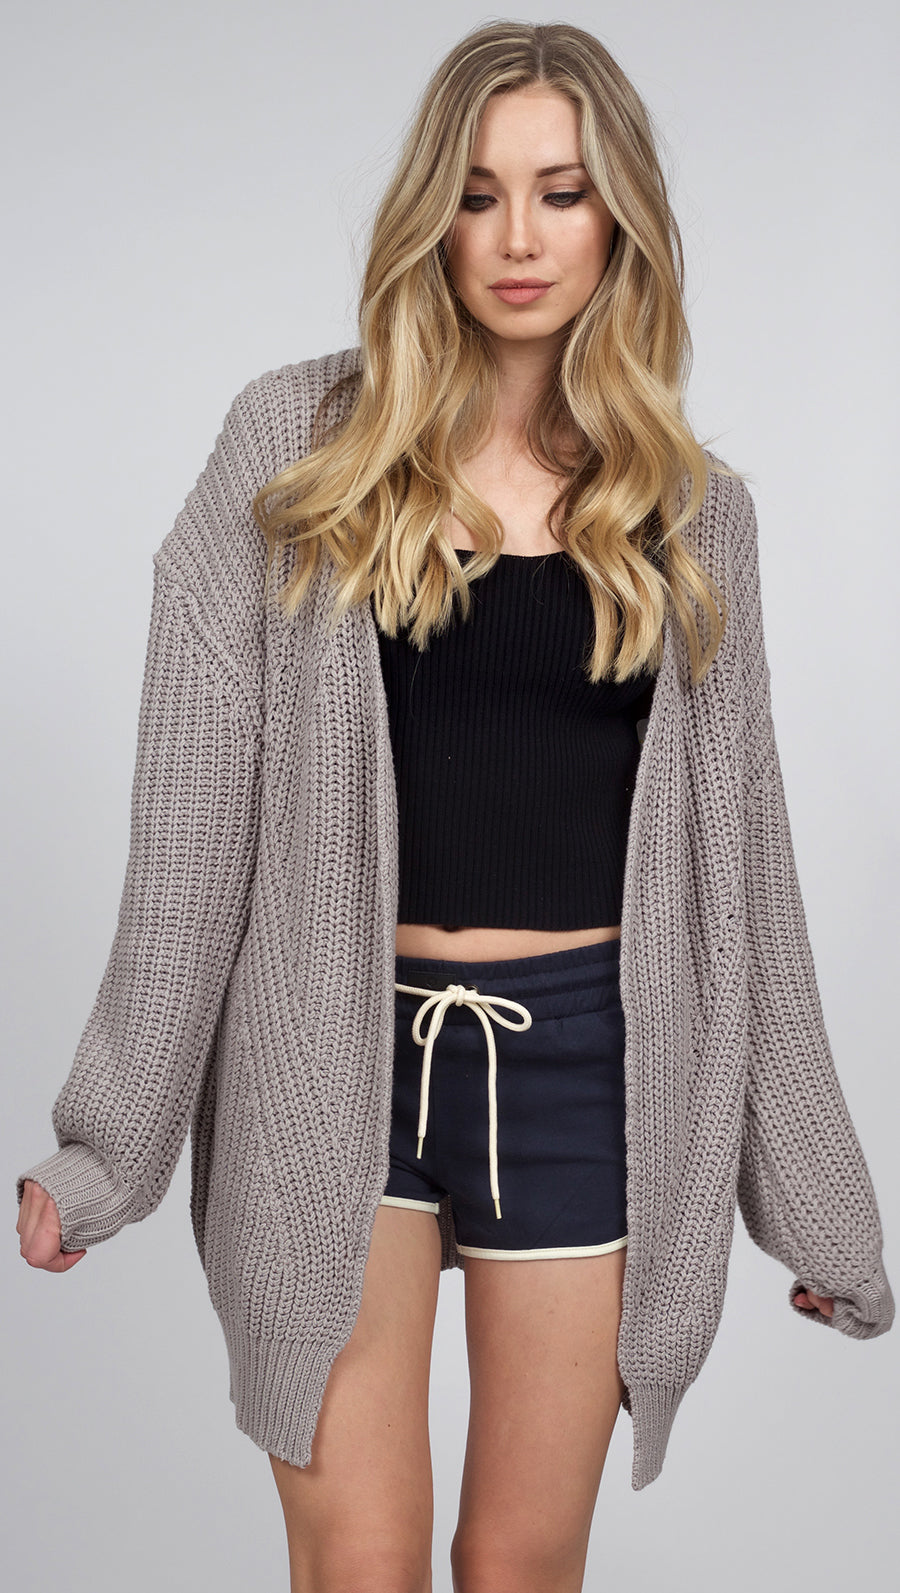 VNDA Benna Shorts, Free People What's Not To Like Cami, Somedays Lovin Shelter Knit Cardigan